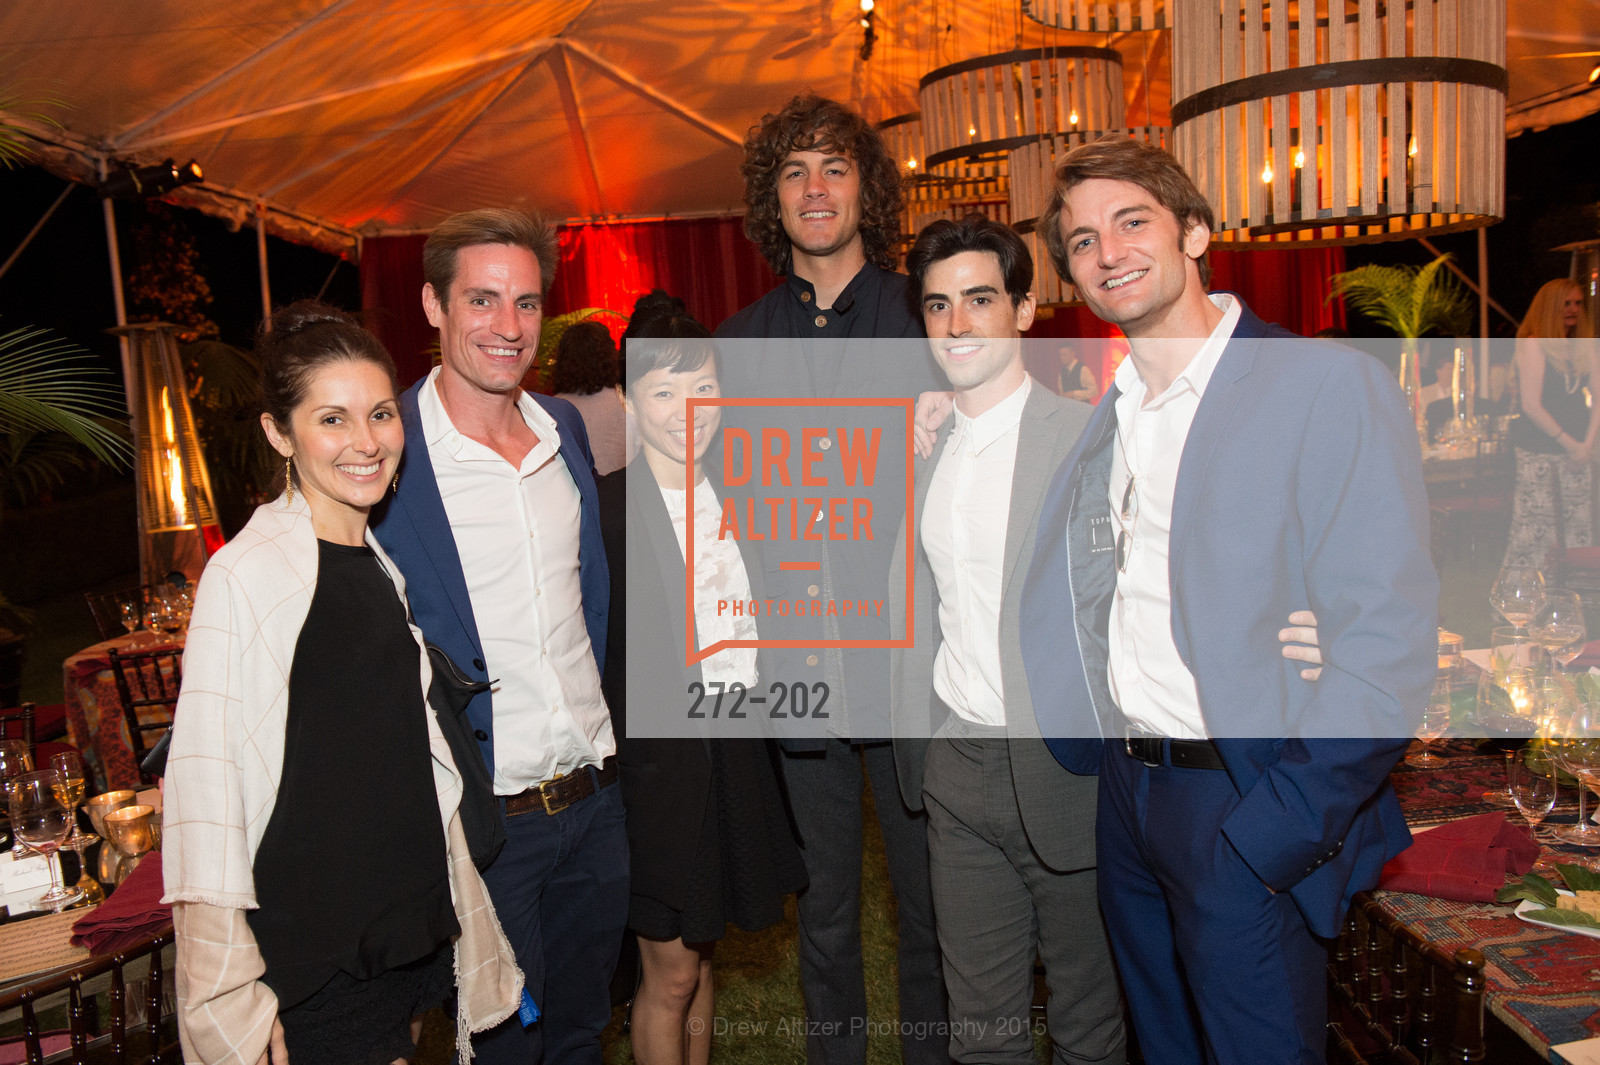 Lauren Strongin, Andrew Veyette, Frances Chung, John Flaherty, Joseph Walsh, Aaron Robison, Festival del Sole Patron Dinner at Darioush Winery, Darioush Winery. 4240 Silverado Trail, July 24th, 2015,Drew Altizer, Drew Altizer Photography, full-service agency, private events, San Francisco photographer, photographer california